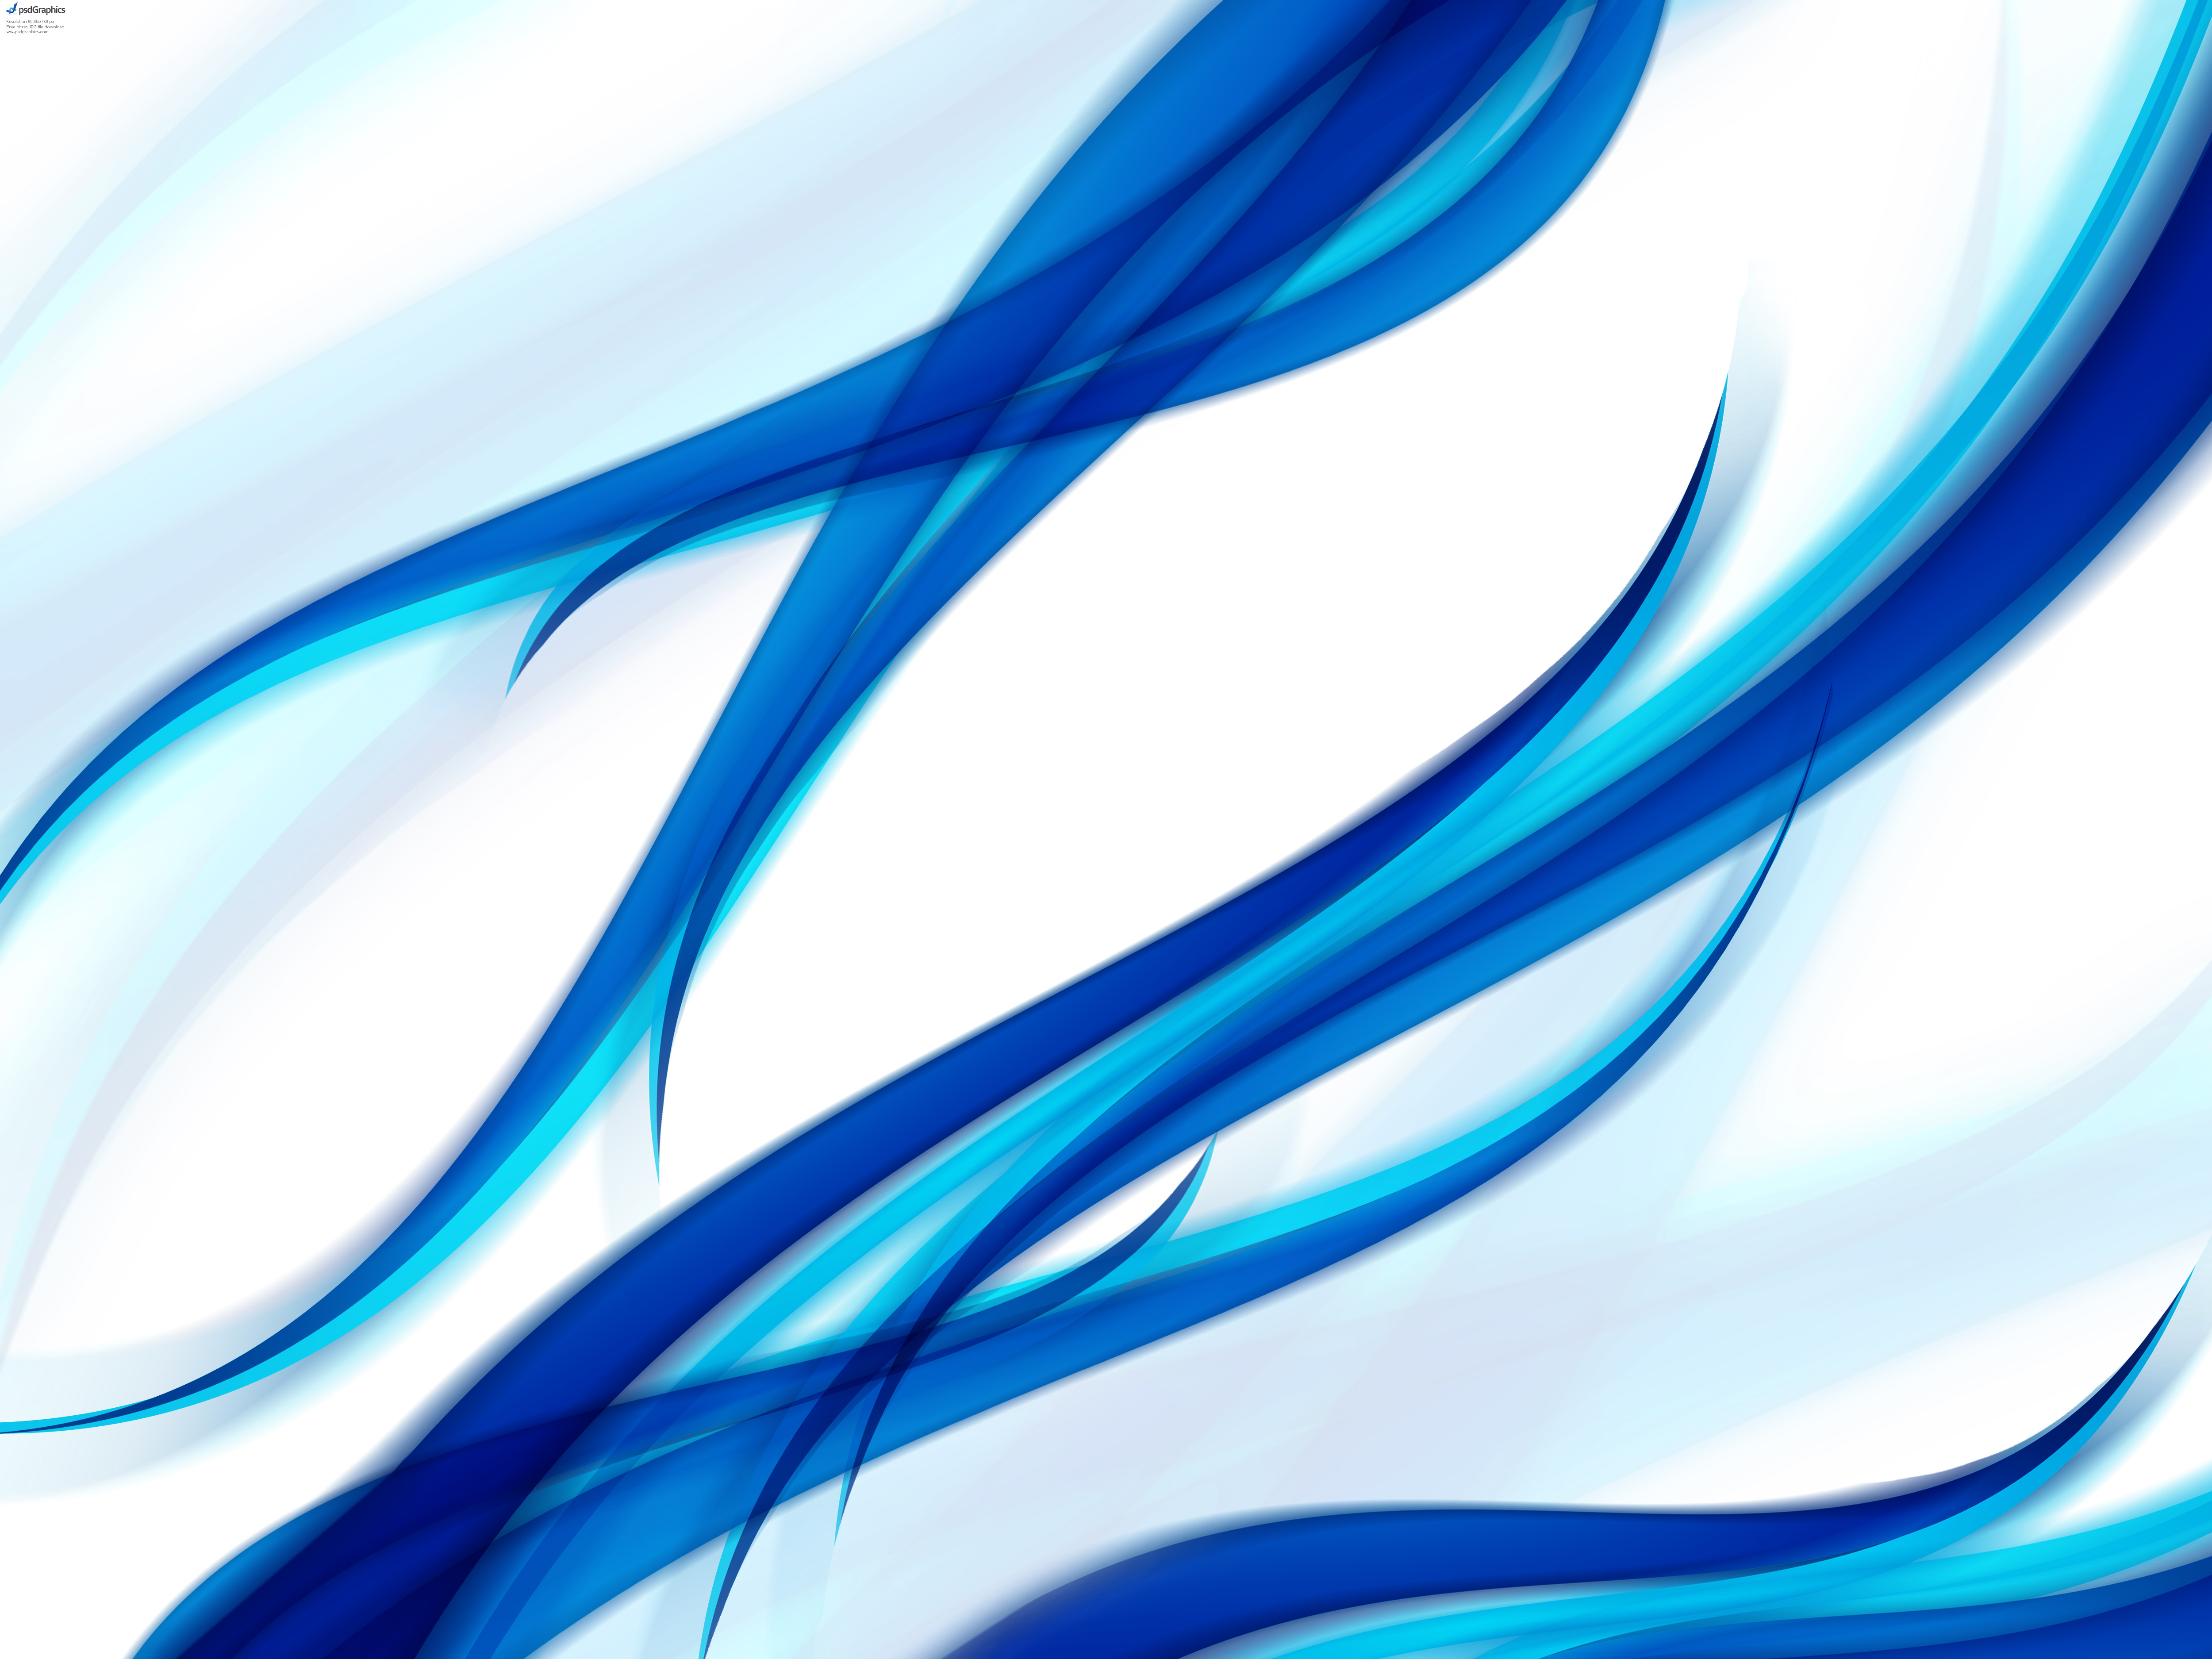 Green and blue abstract floral backgrounds PSDGraphics 5000x3750